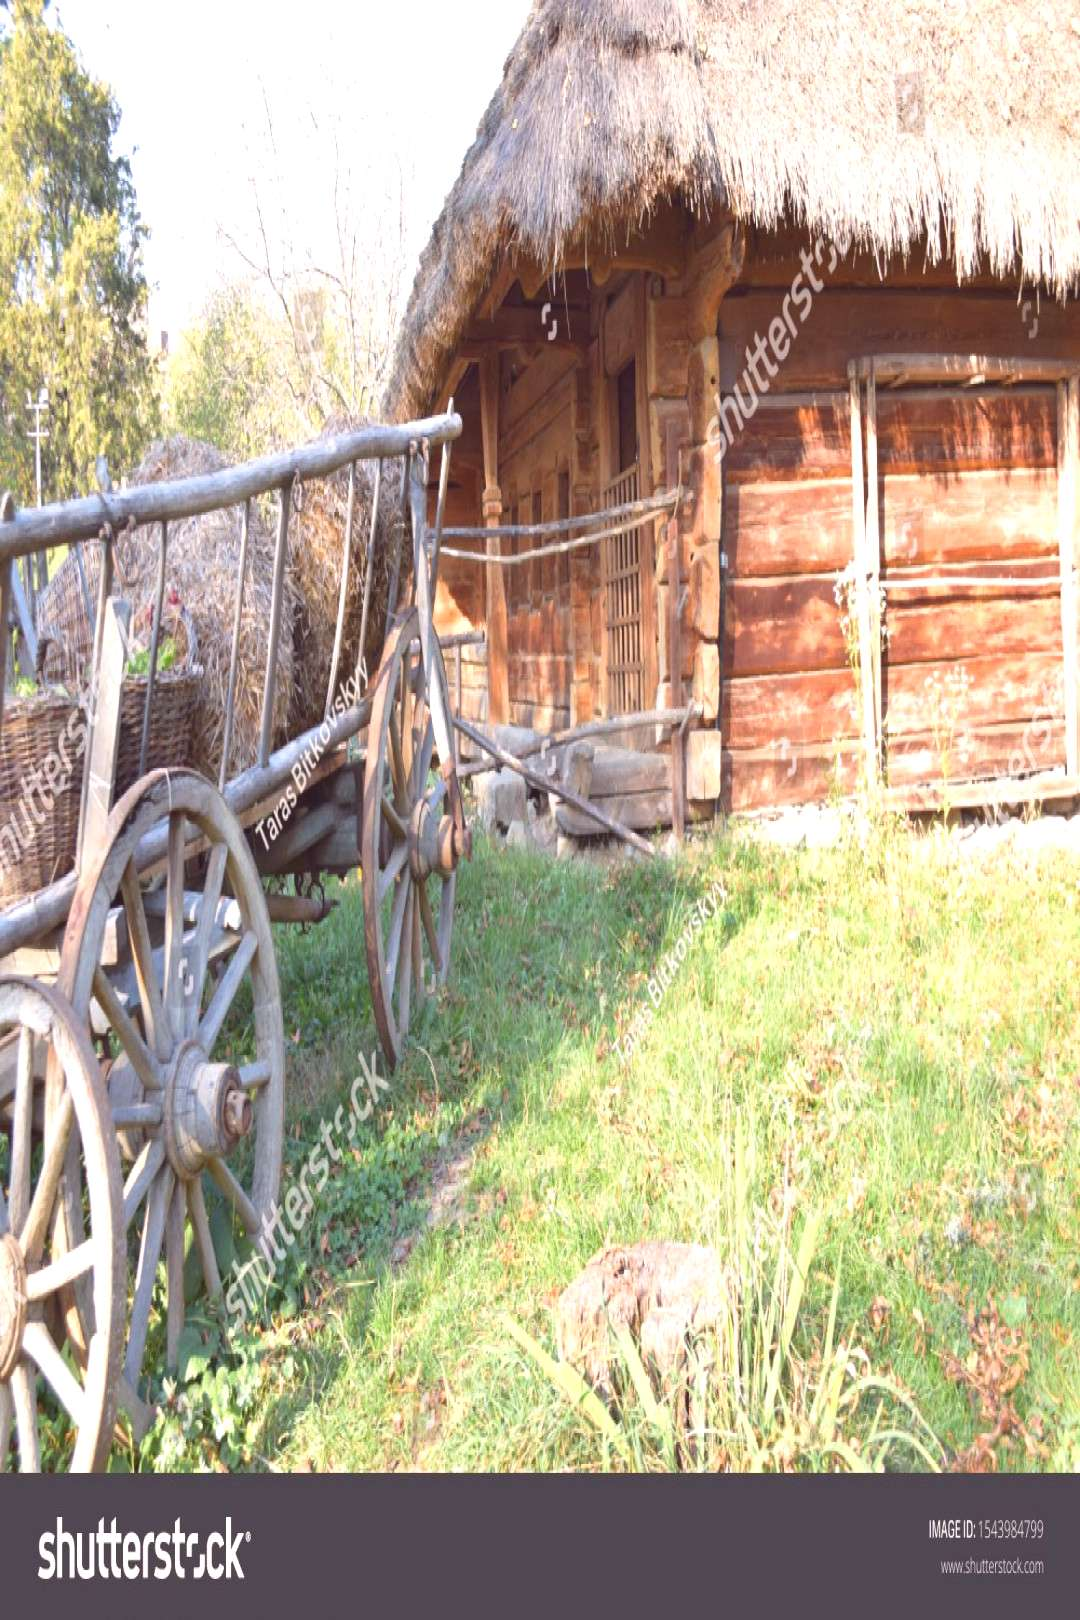 Old wooden cart, Retro dray, Wooden house background, Country style, Village ,